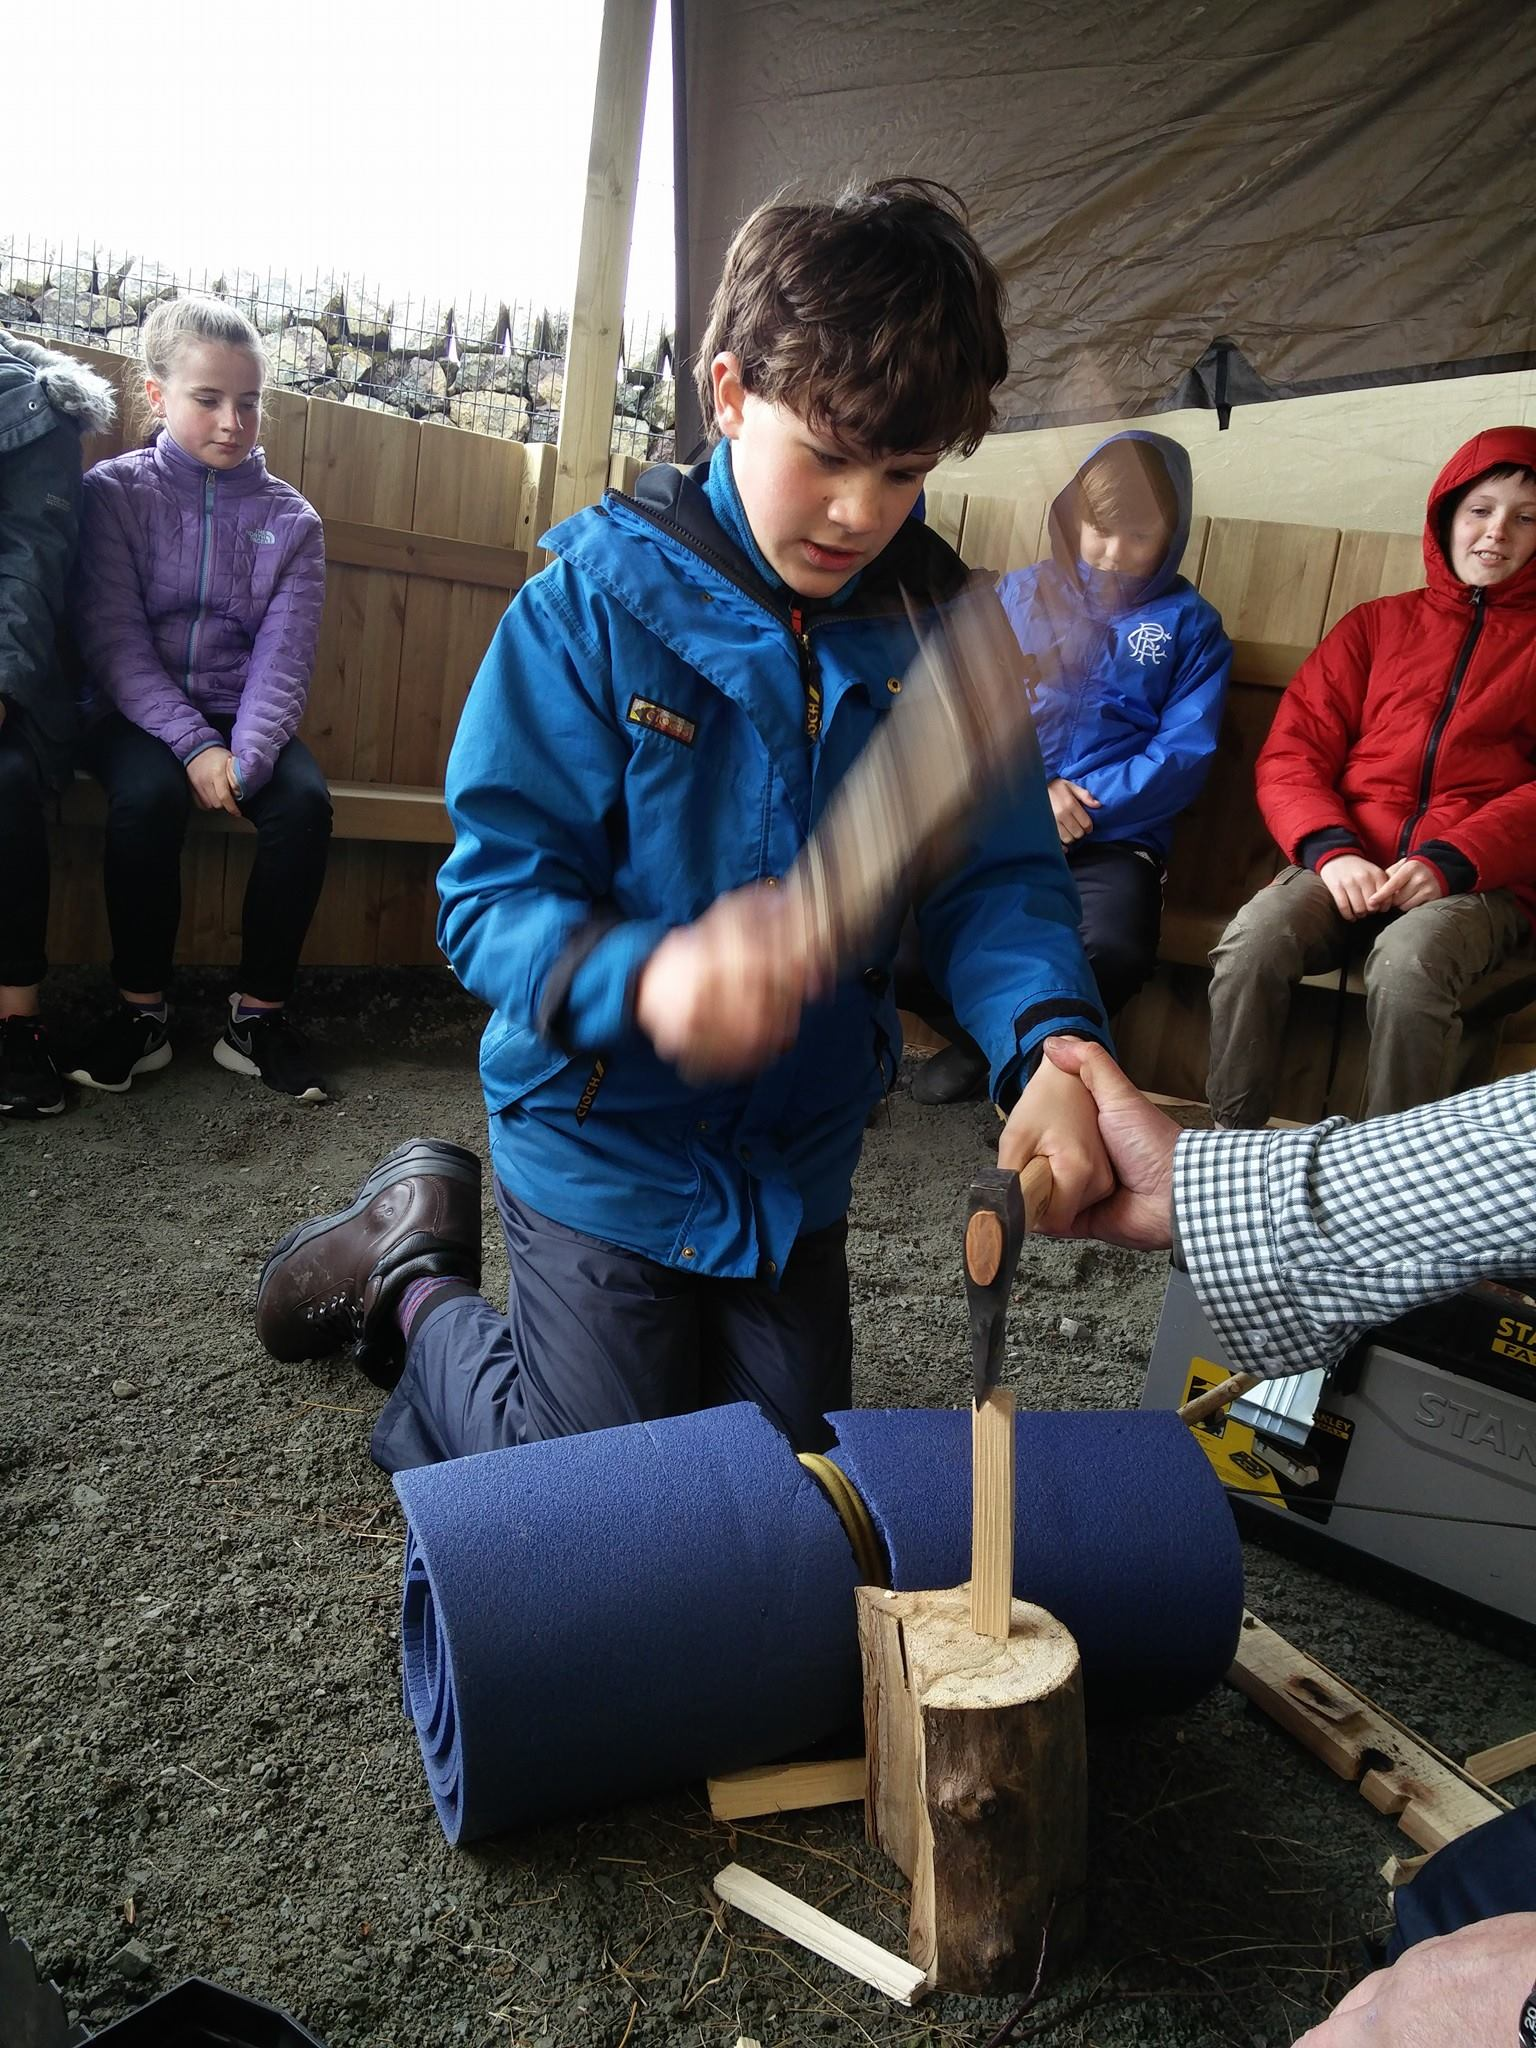 Valuable Skills for Life – The Bushcraft sessions provide practical training for young people